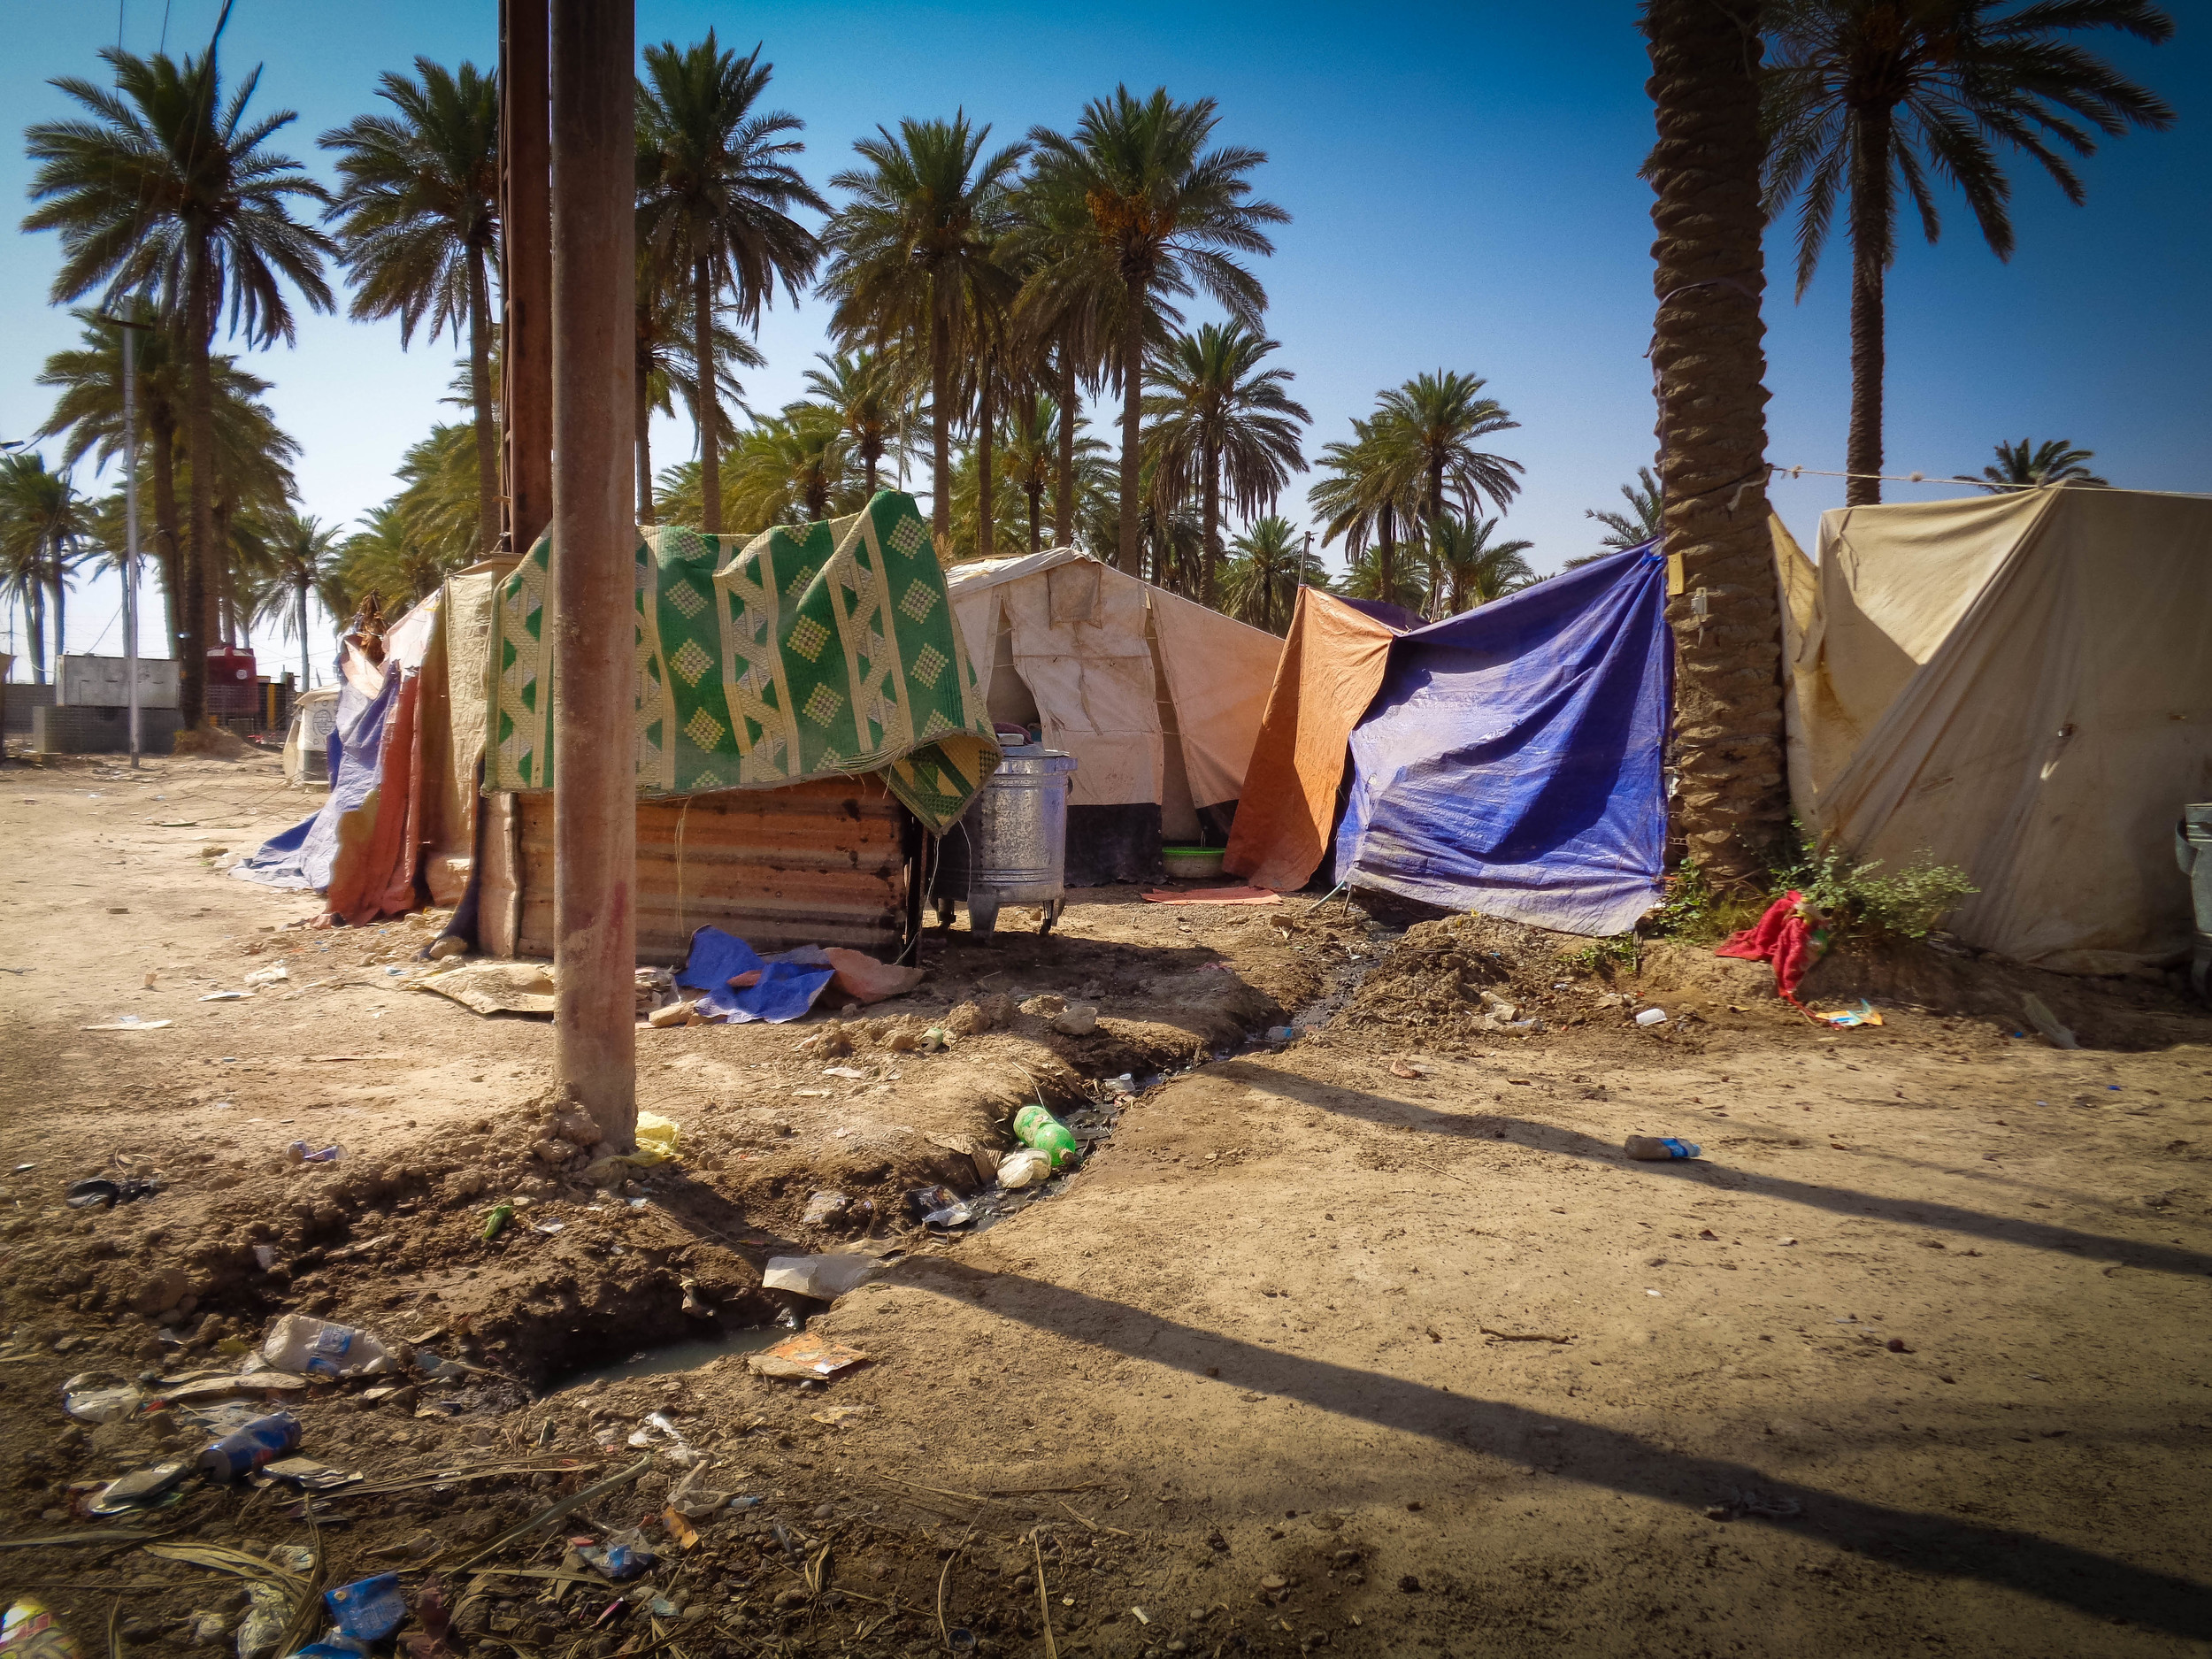 Water, sanitation, and hygiene systems in the camps are usually underdeveloped or non-existent.